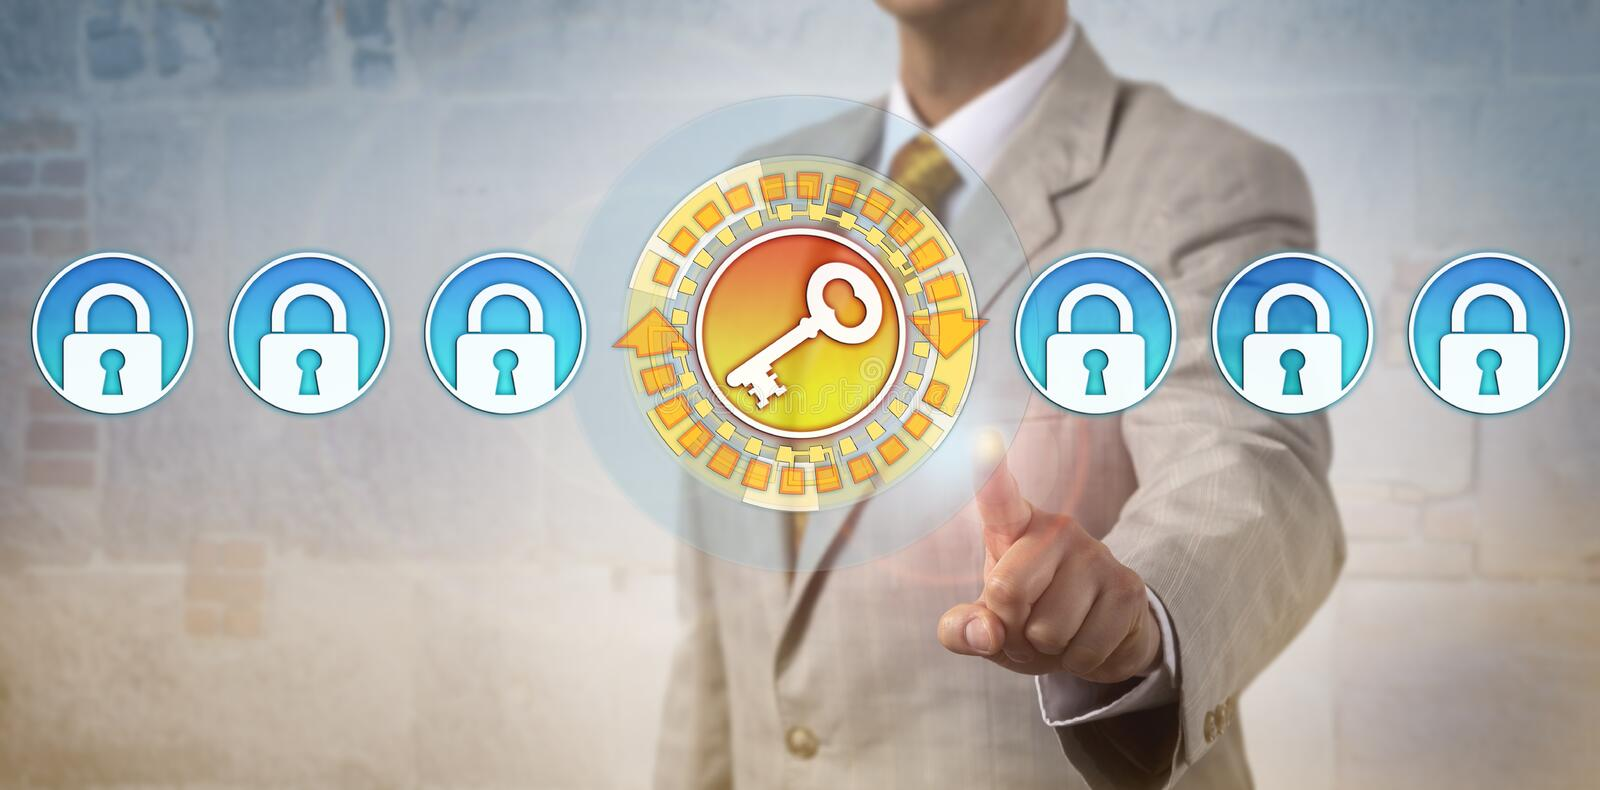 Administrator Highlighting Key In Row Of Locks royalty free stock photography